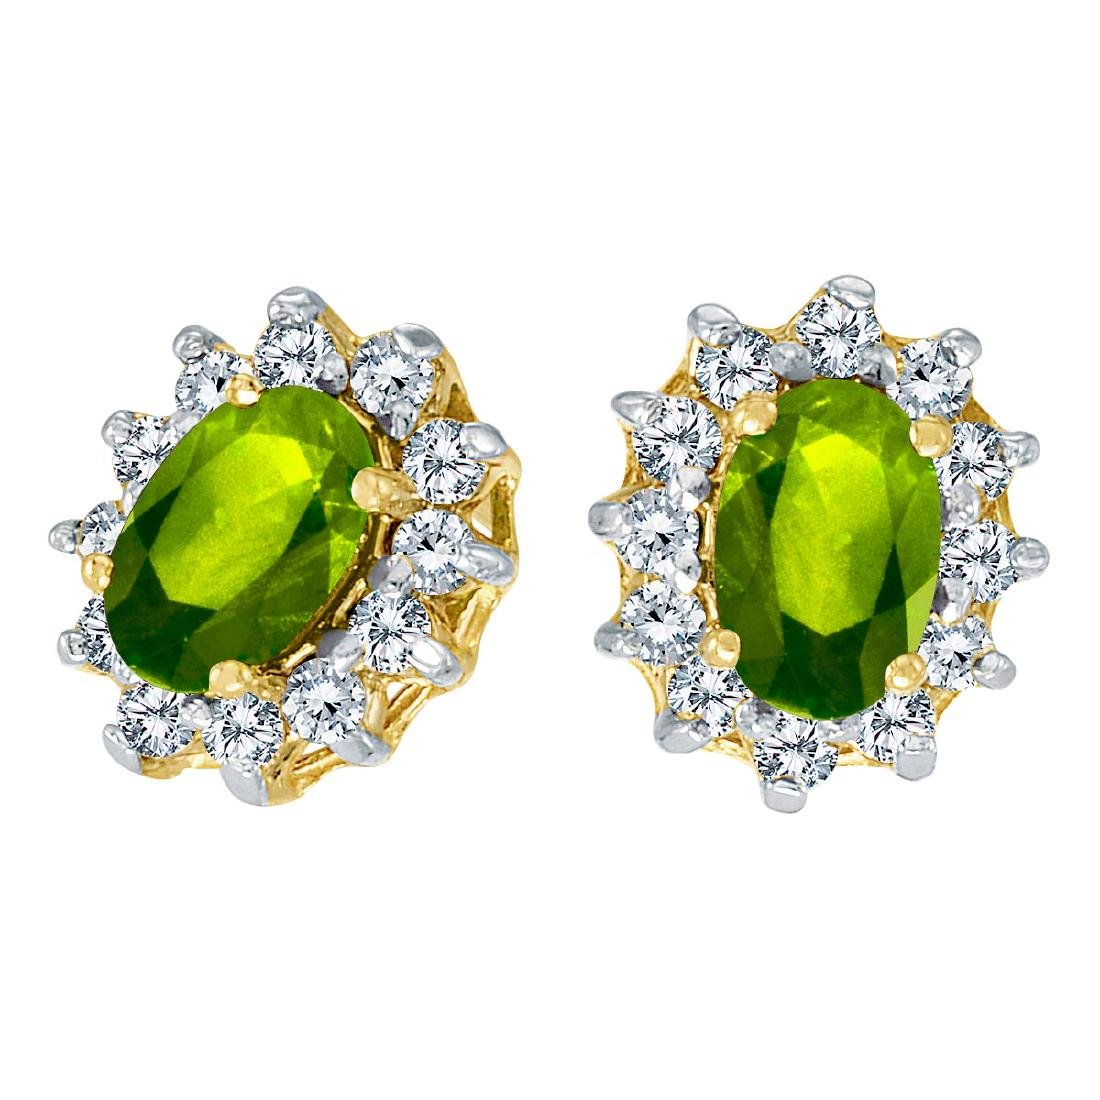 Certified 14k Yellow Gold Oval Peridot and .25 total CT